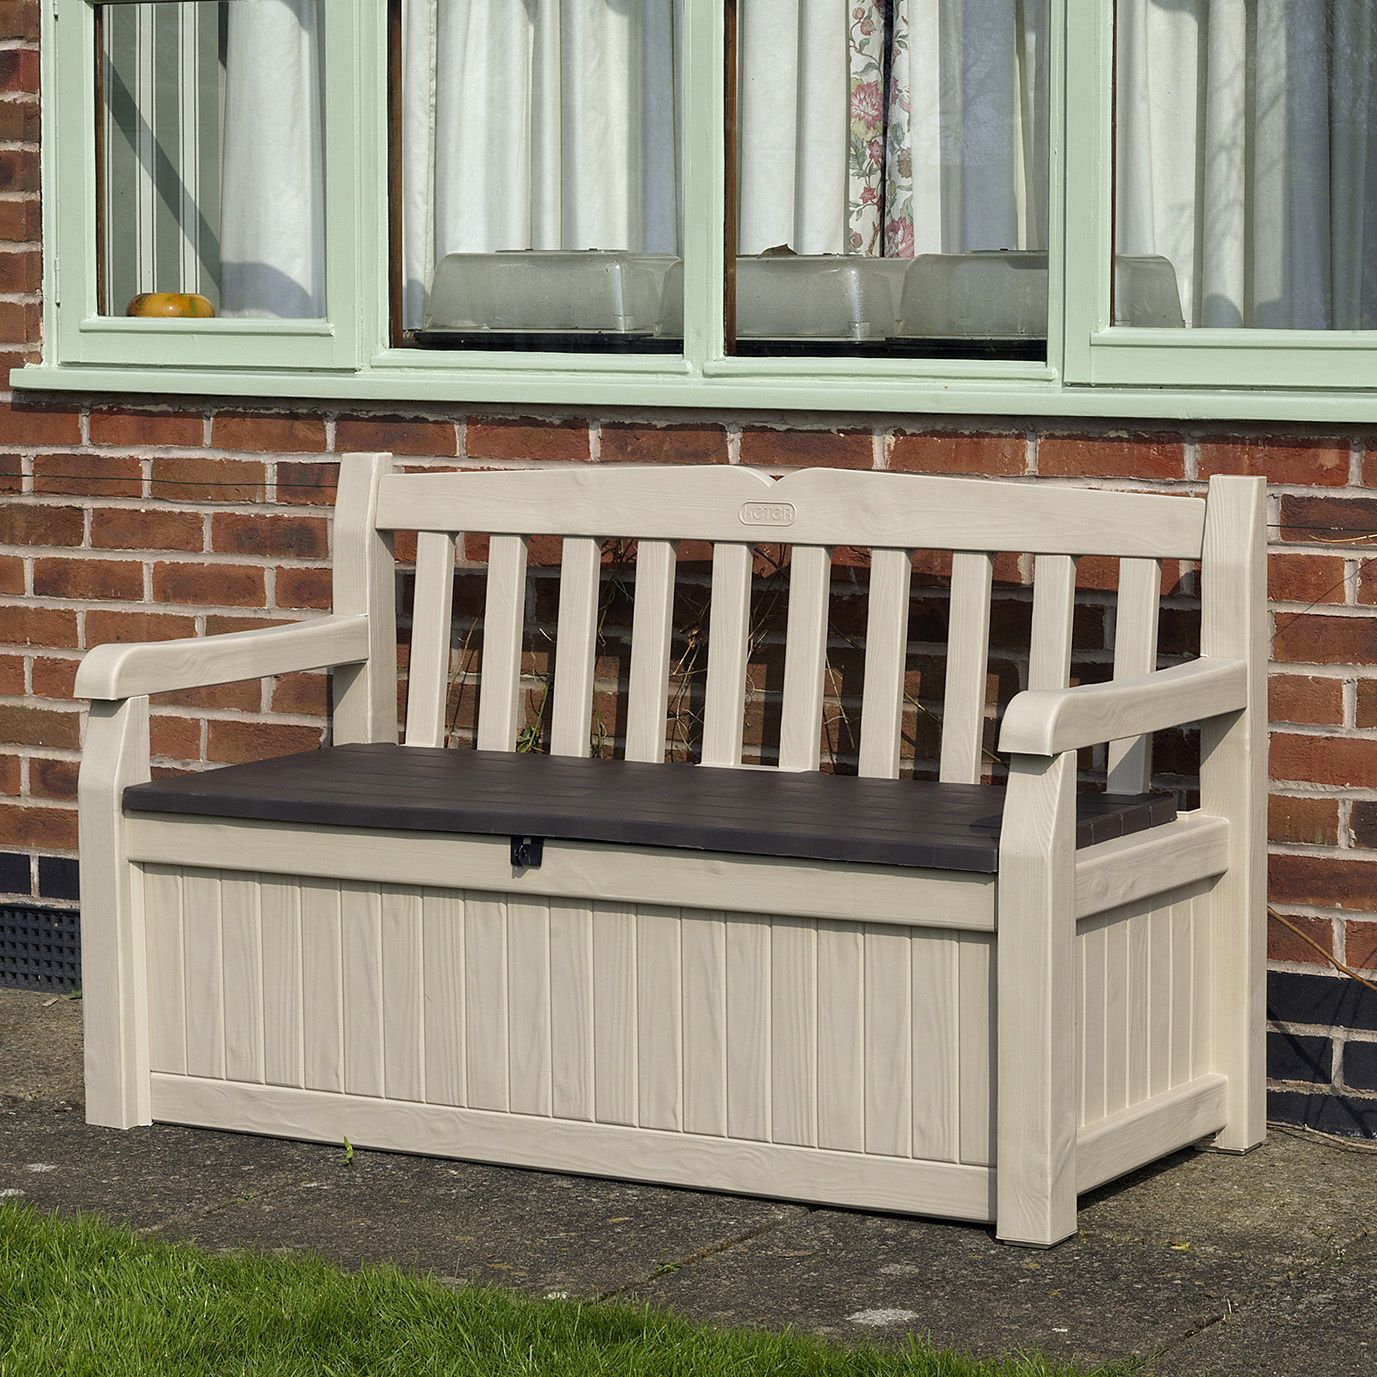 Wood effect plastic garden bench storage box for Outdoor plastic bench seats